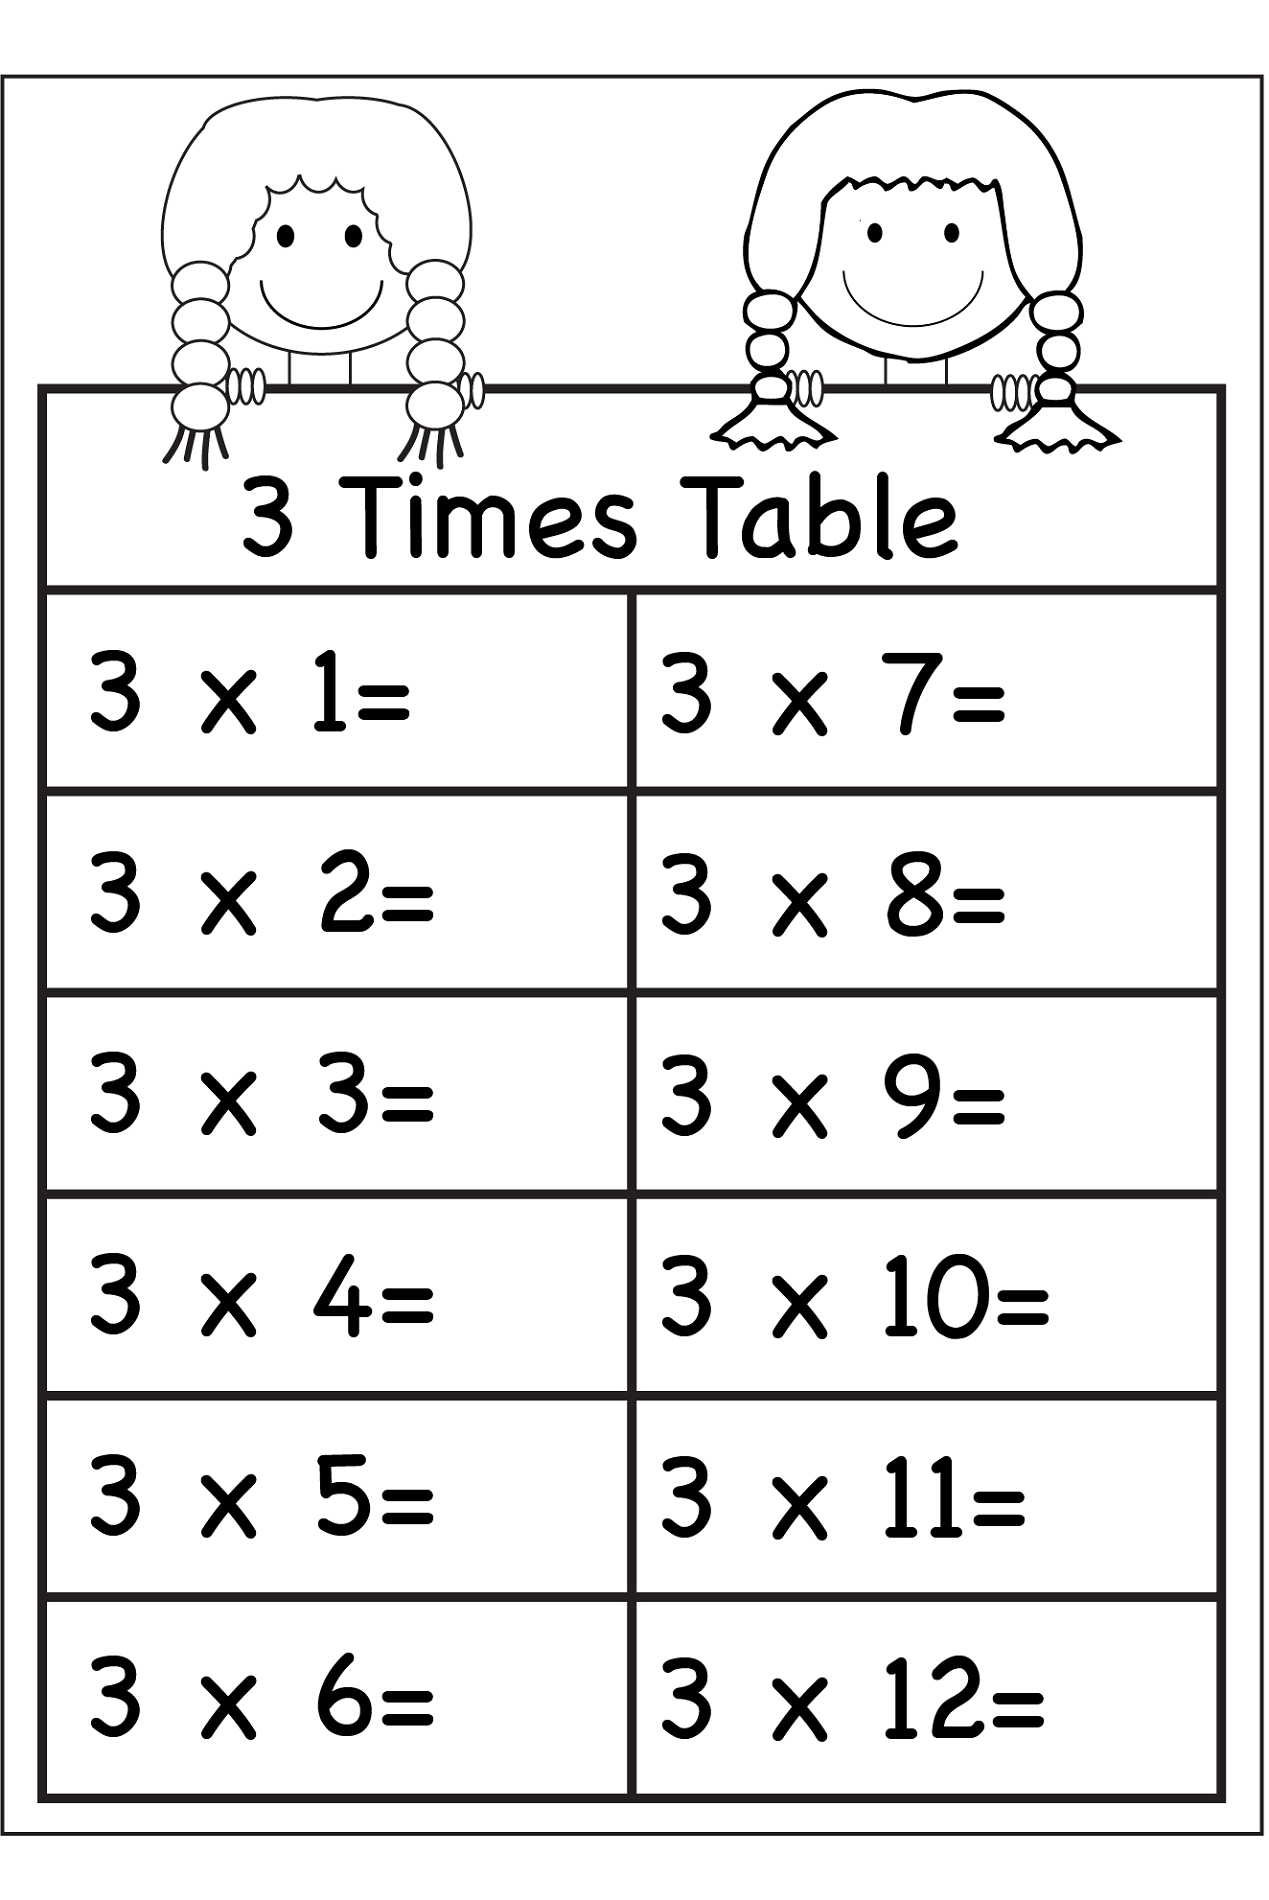 3 Times Table Worksheets – 3 Times Table Worksheet